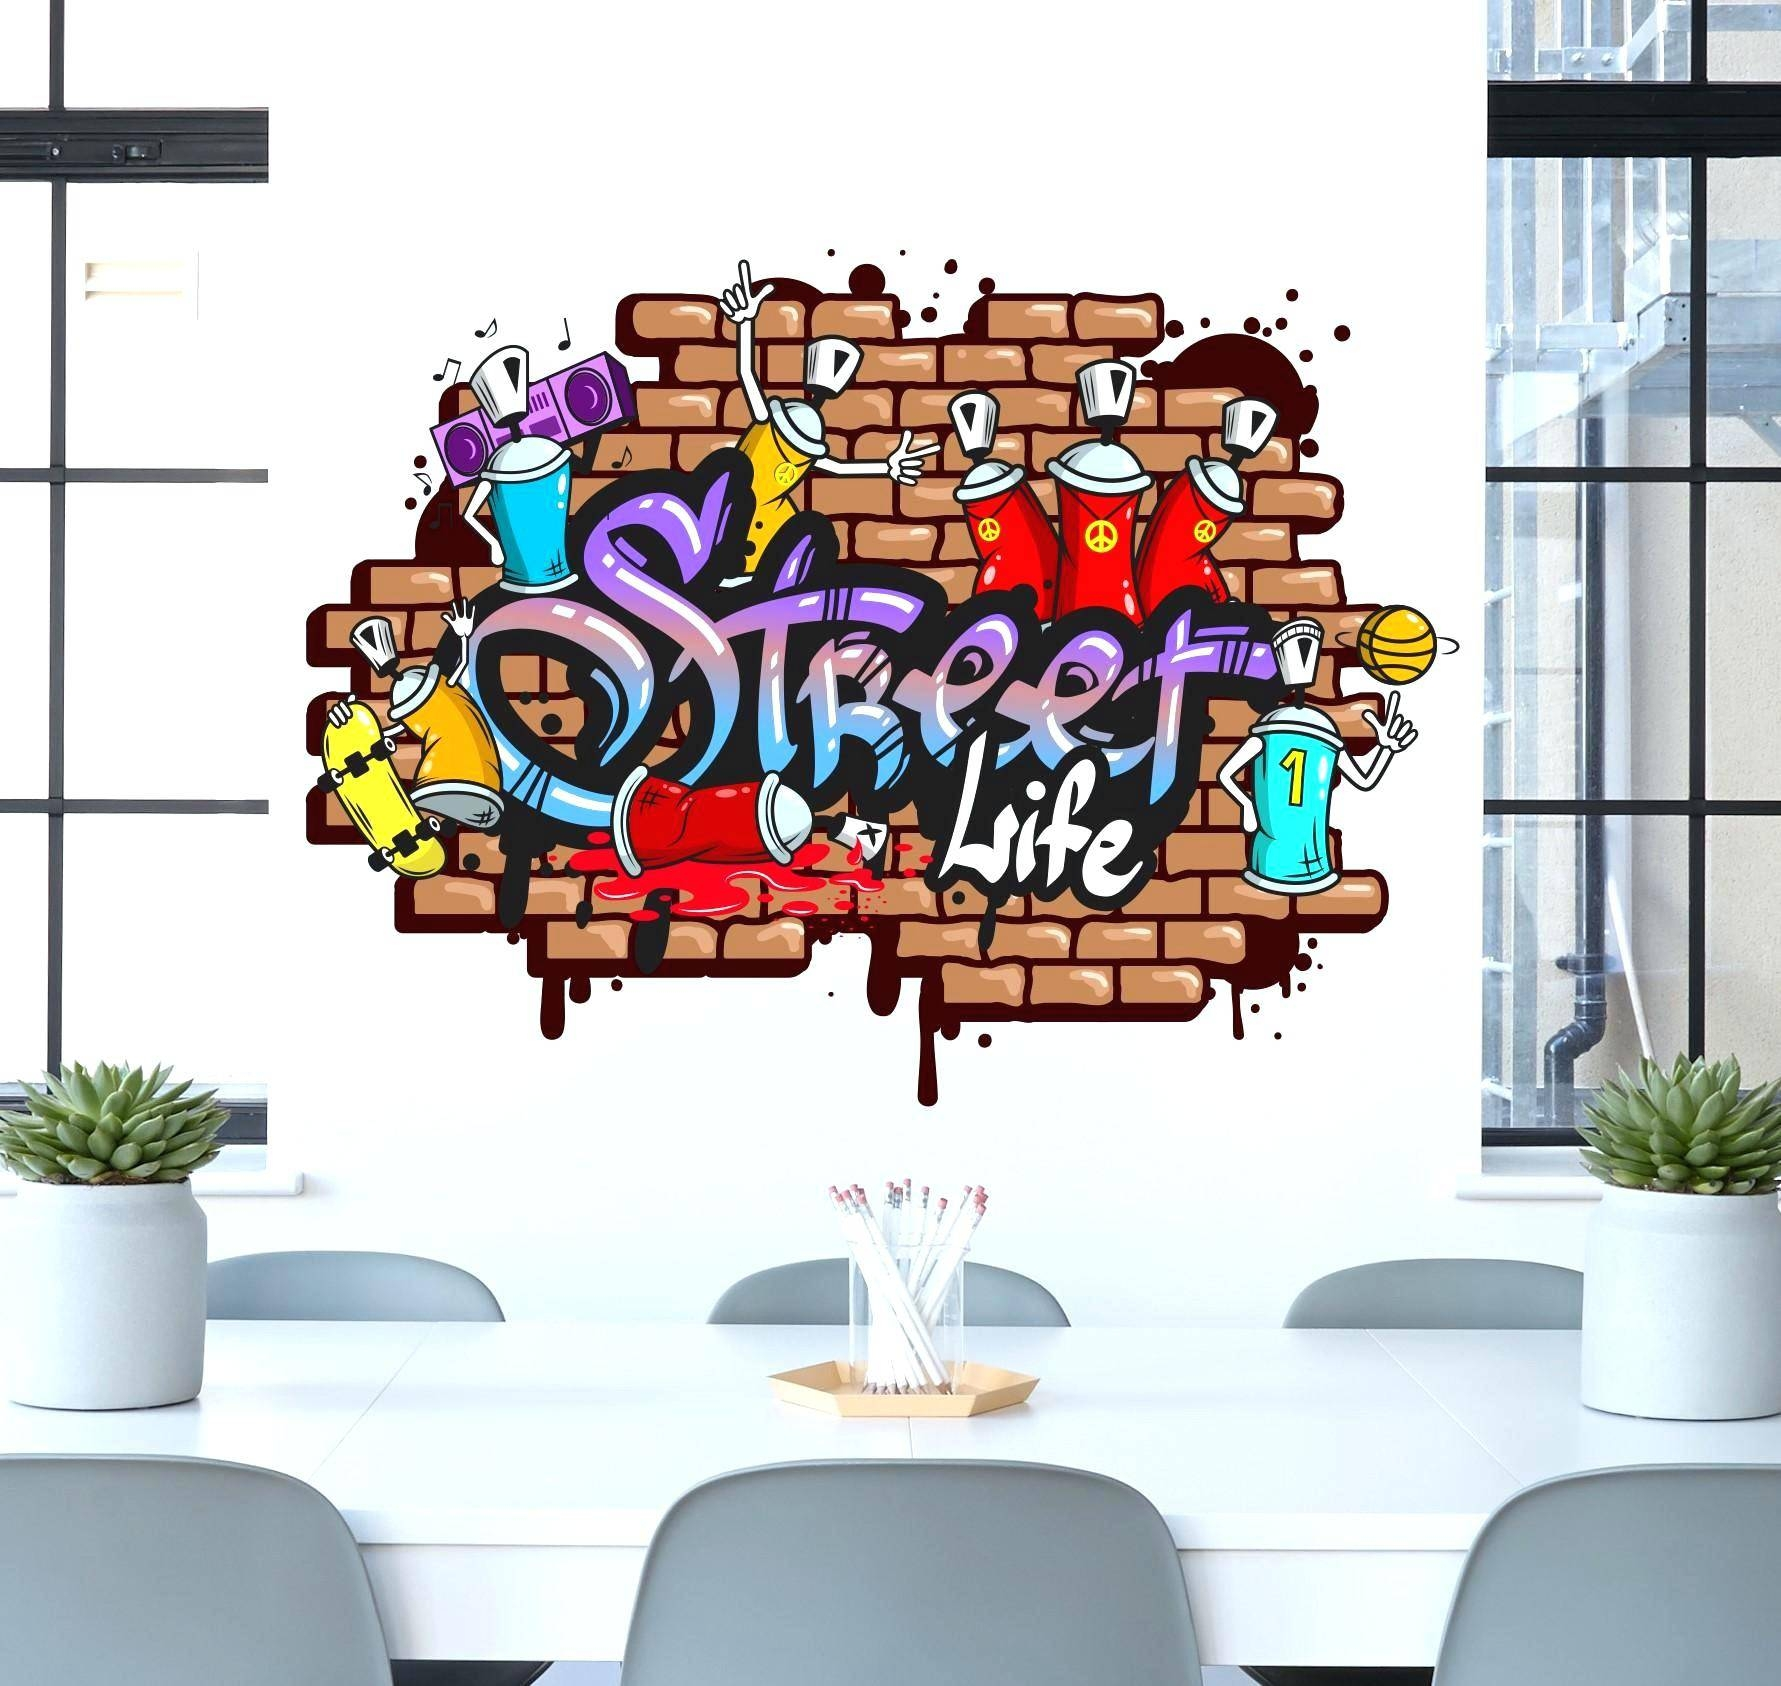 Wallpaper Stickers For Walls 30 Best Graffiti Wall Art Stickers